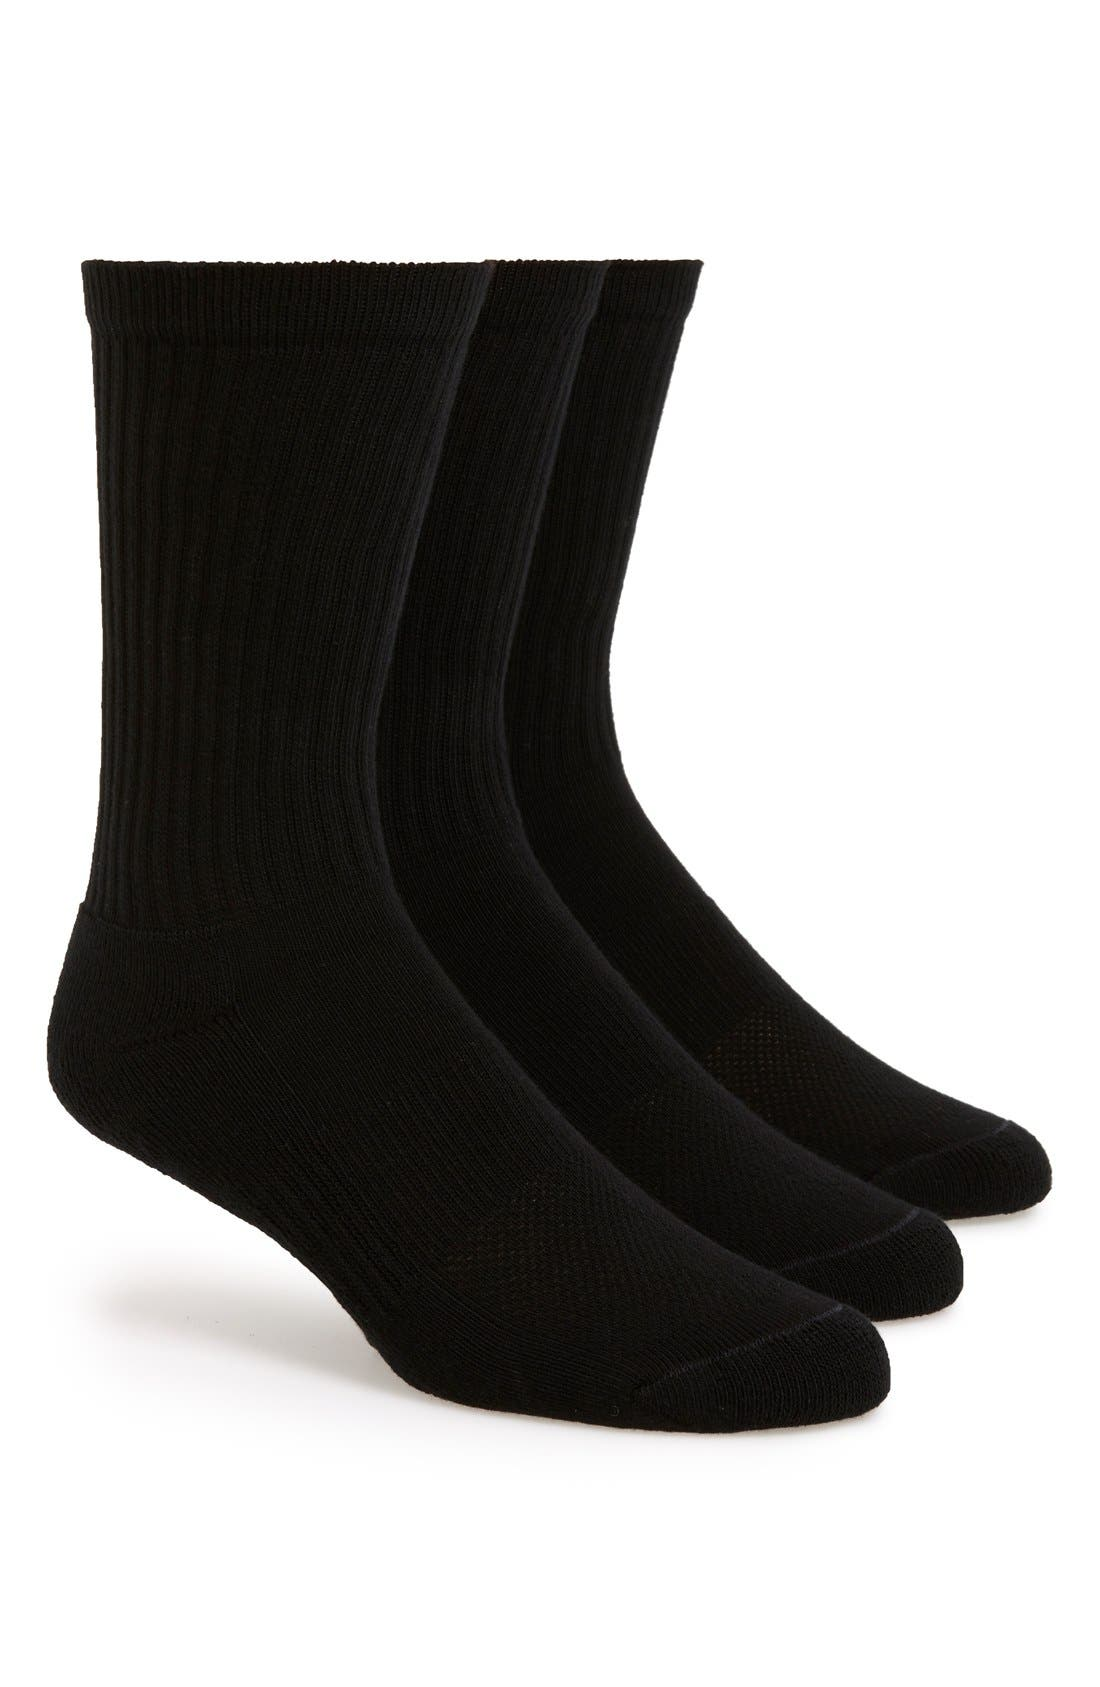 3-Pack Athletic Socks,                             Main thumbnail 1, color,                             BLACK